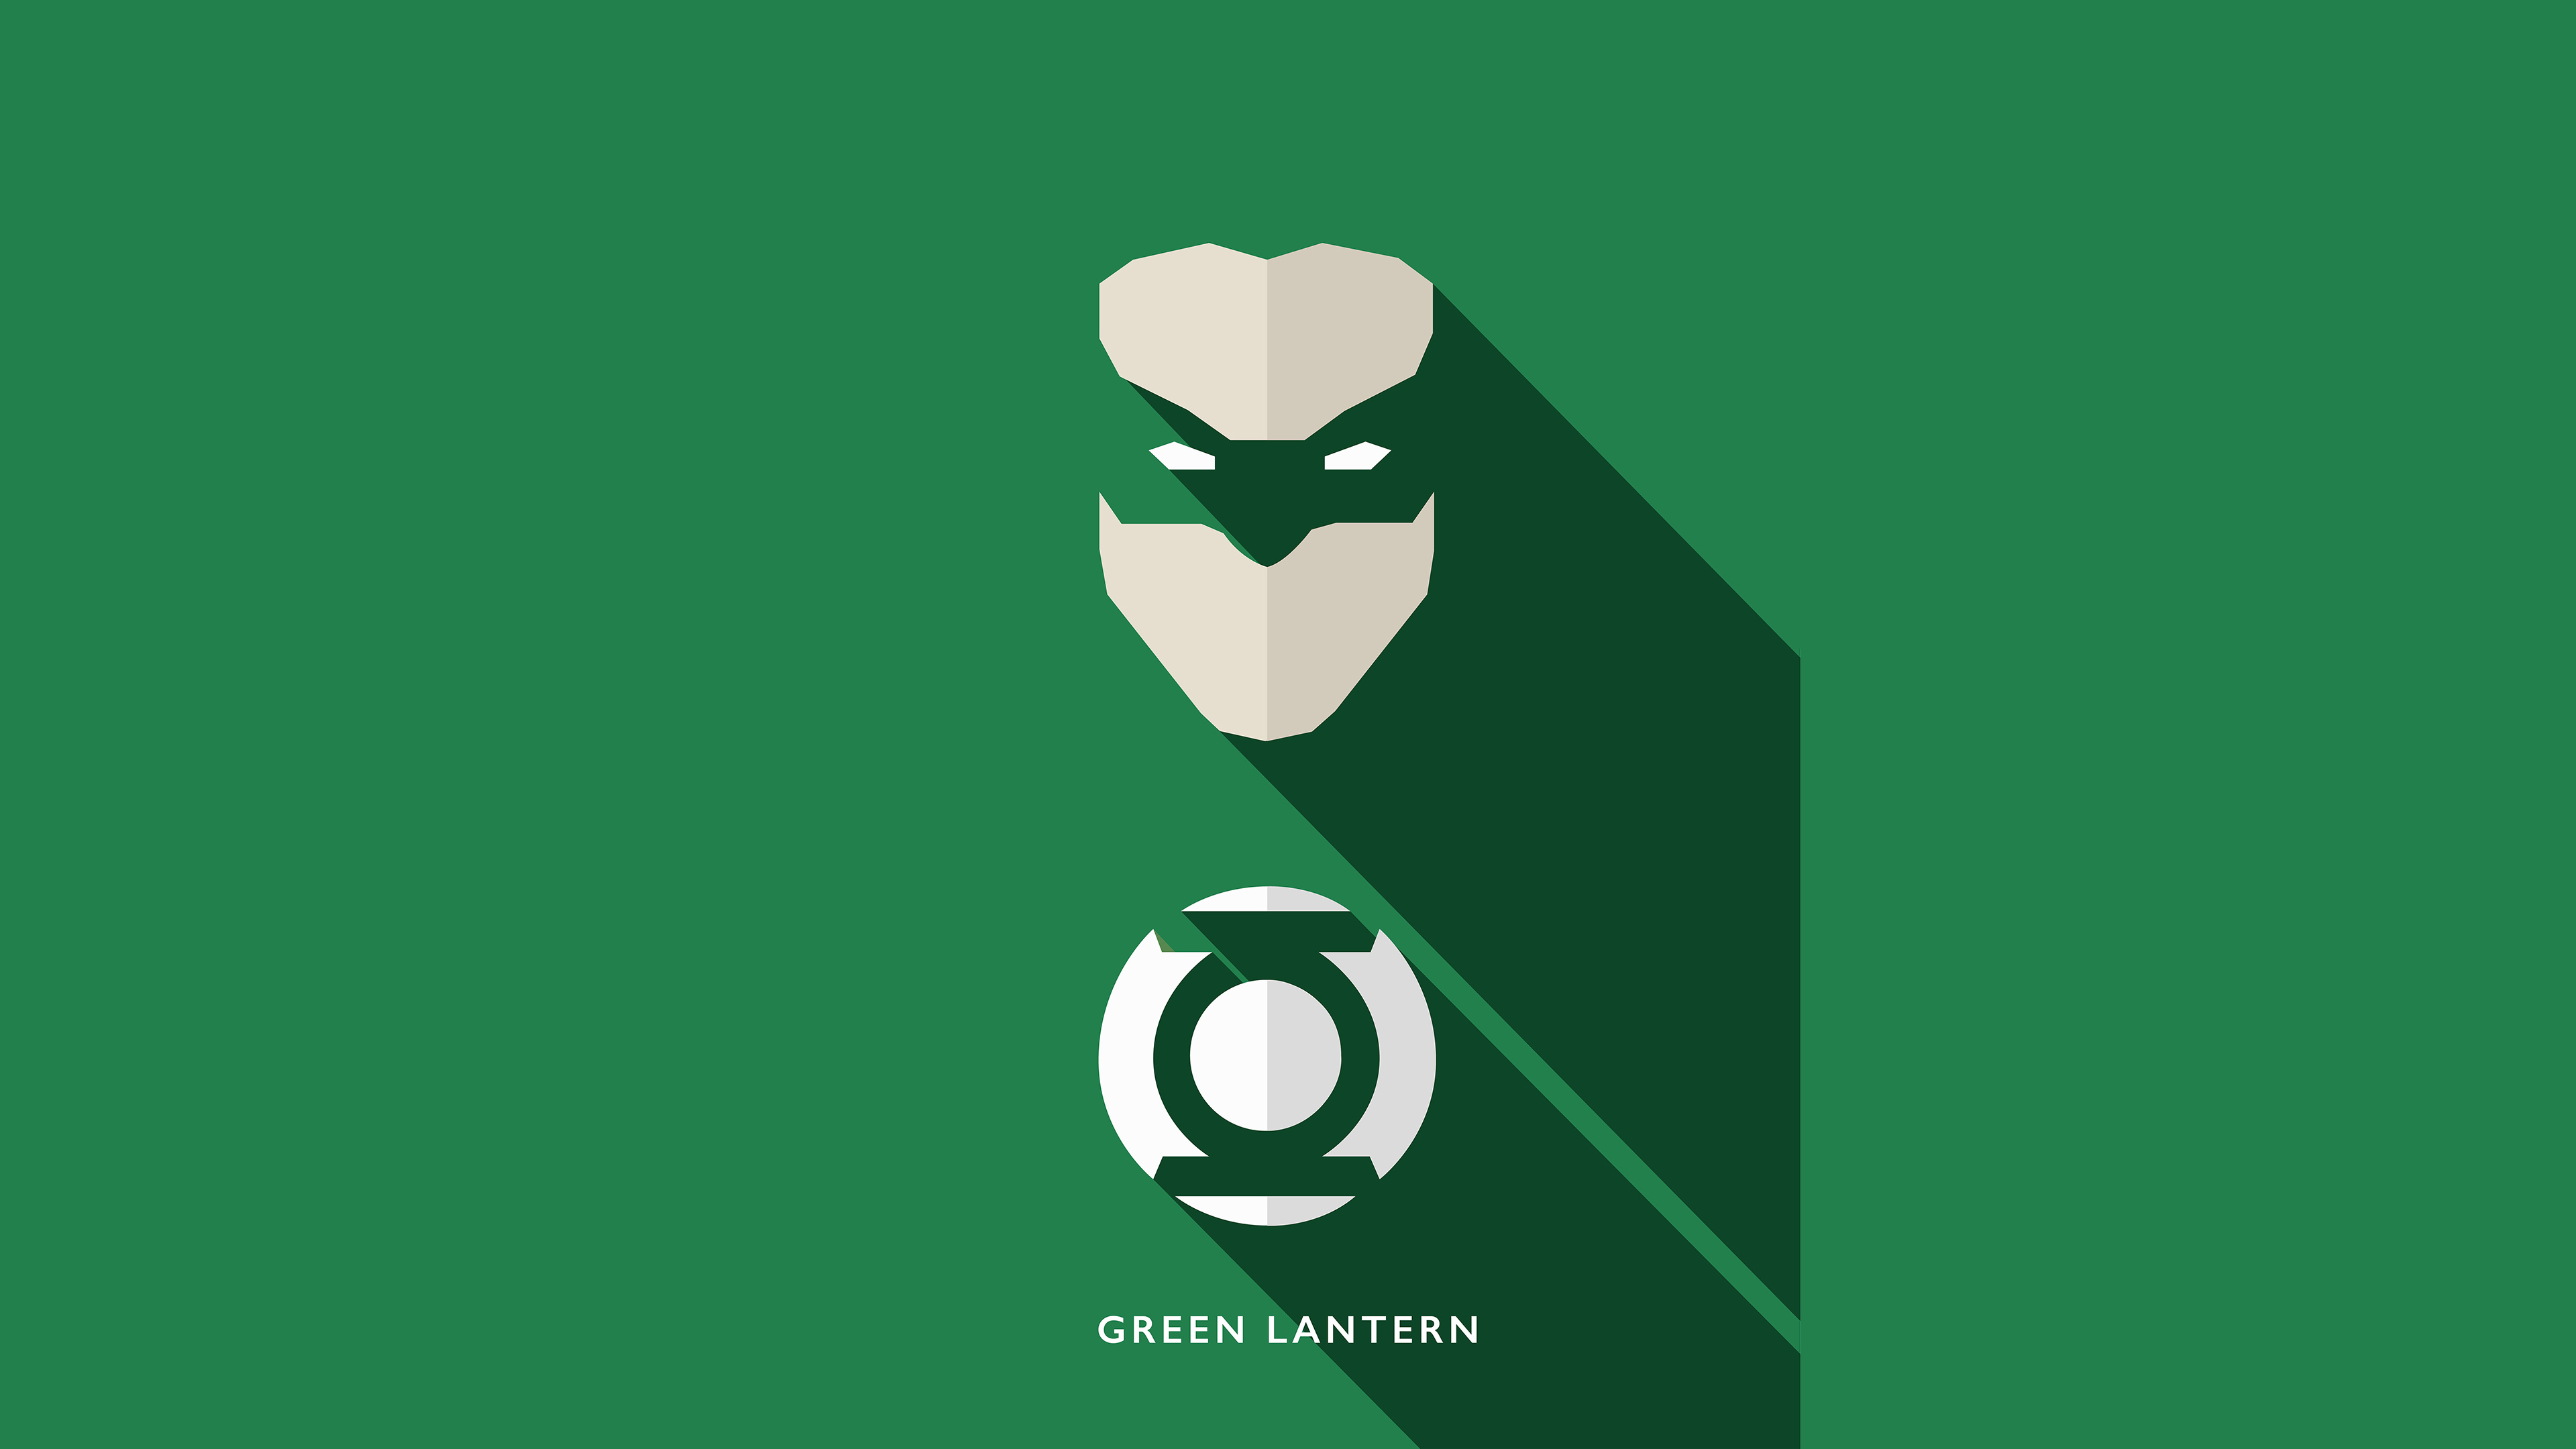 green lantern minimalism 4k 1552230647 - Green Lantern Minimalism 4k - superheroes wallpapers, minimalist wallpapers, minimalism wallpapers, hd-wallpapers, green lantern wallpapers, digital art wallpapers, behance wallpapers, artwork wallpapers, artist wallpapers, 4k-wallpapers